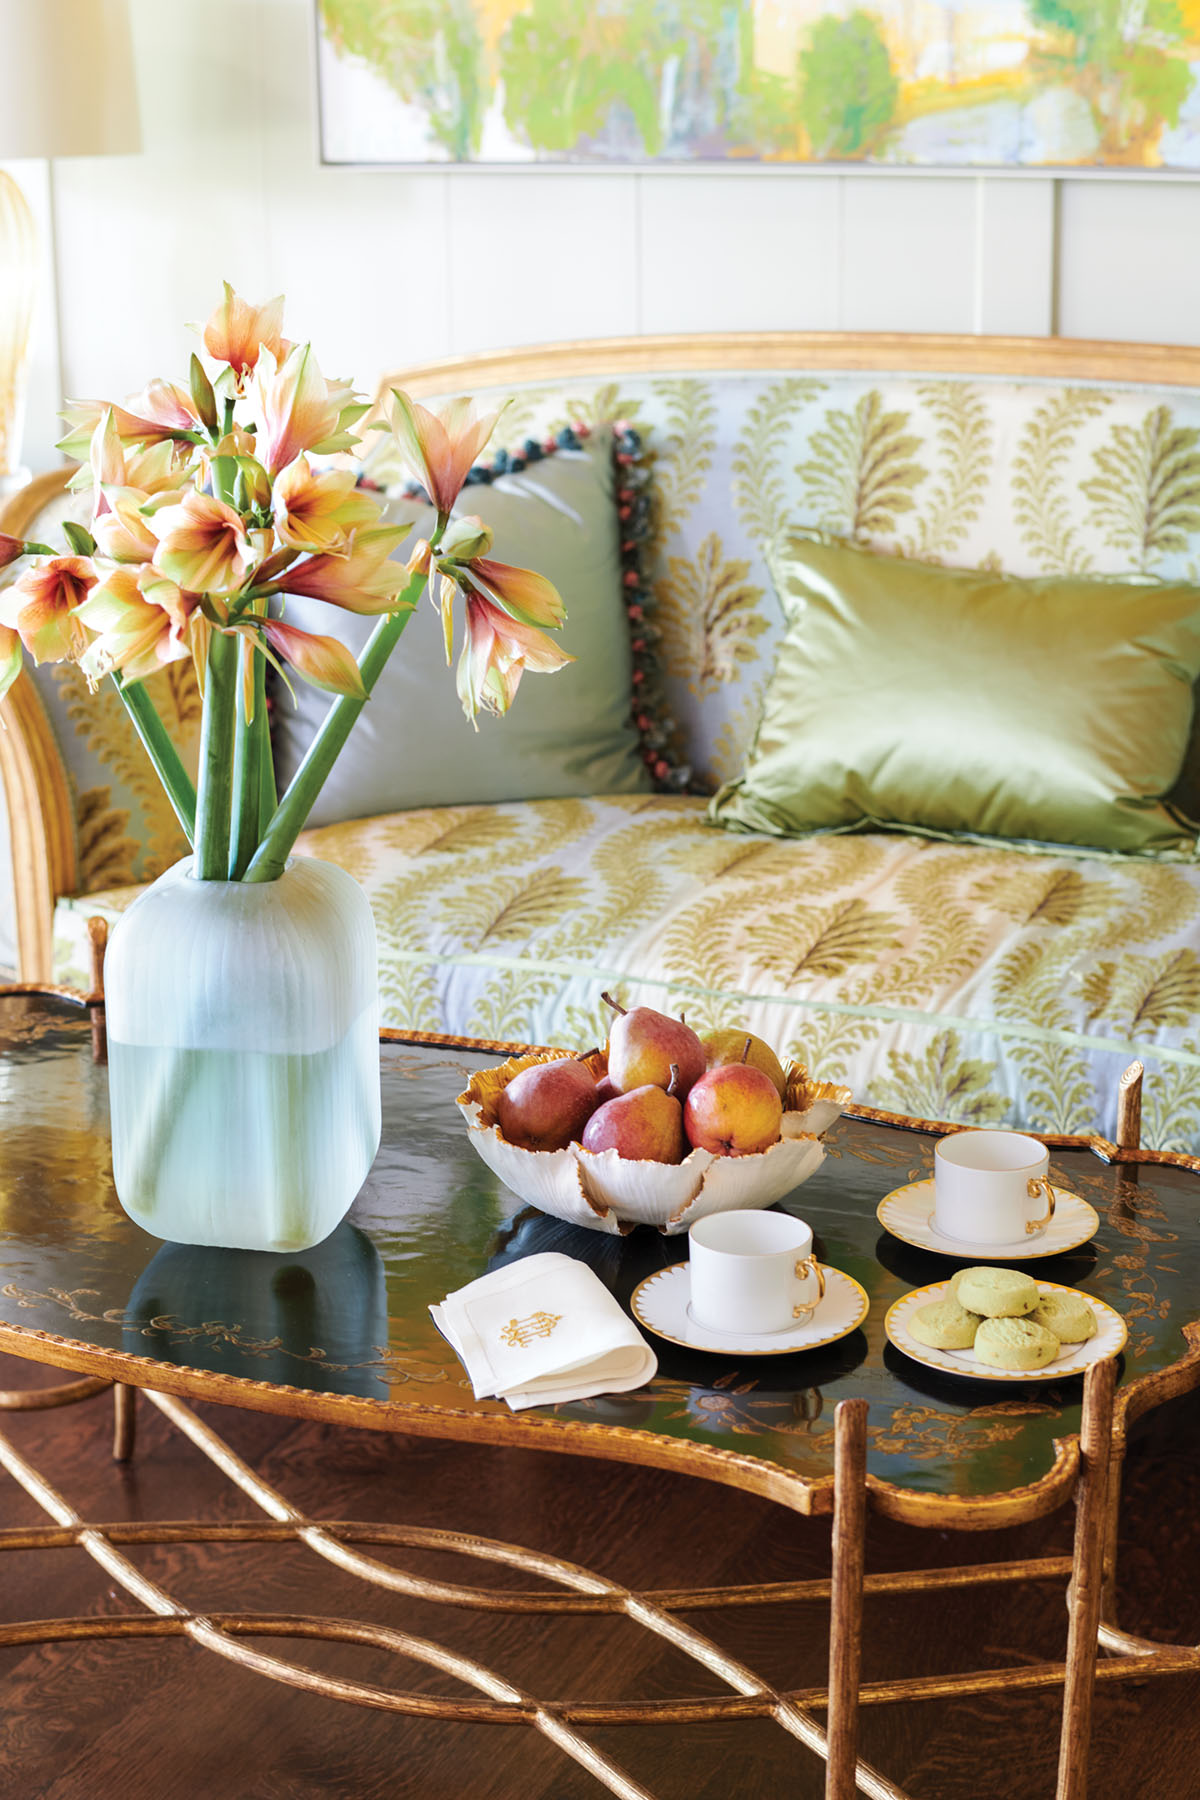 vignette with a settee, coffee table, vase of amaryllis in a frosted vase, bowl of pears, two cups/saucers, and cookiesa